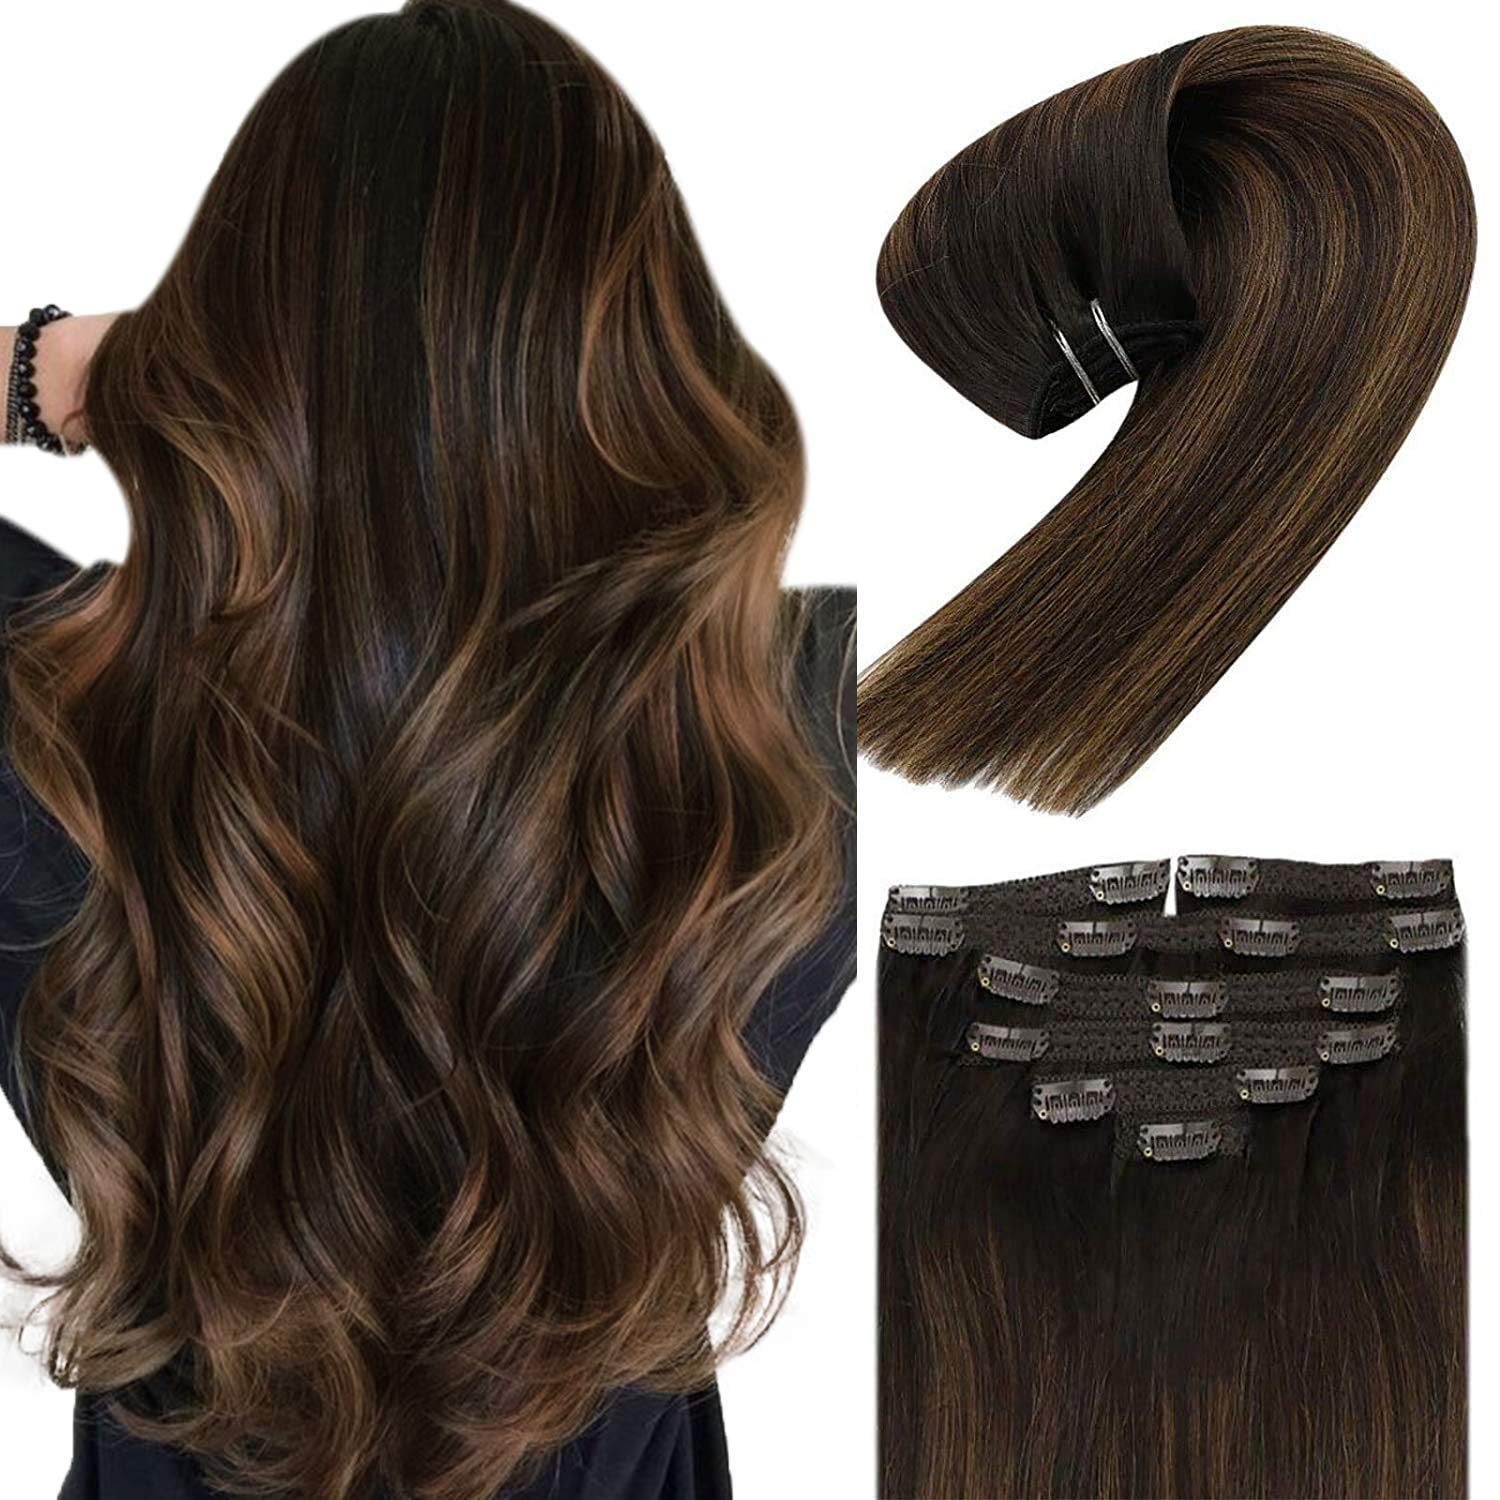 Sunny Hair Award-winning store New York Mall Extensions Clip in Brown Brow Balayage 16inch Darkest